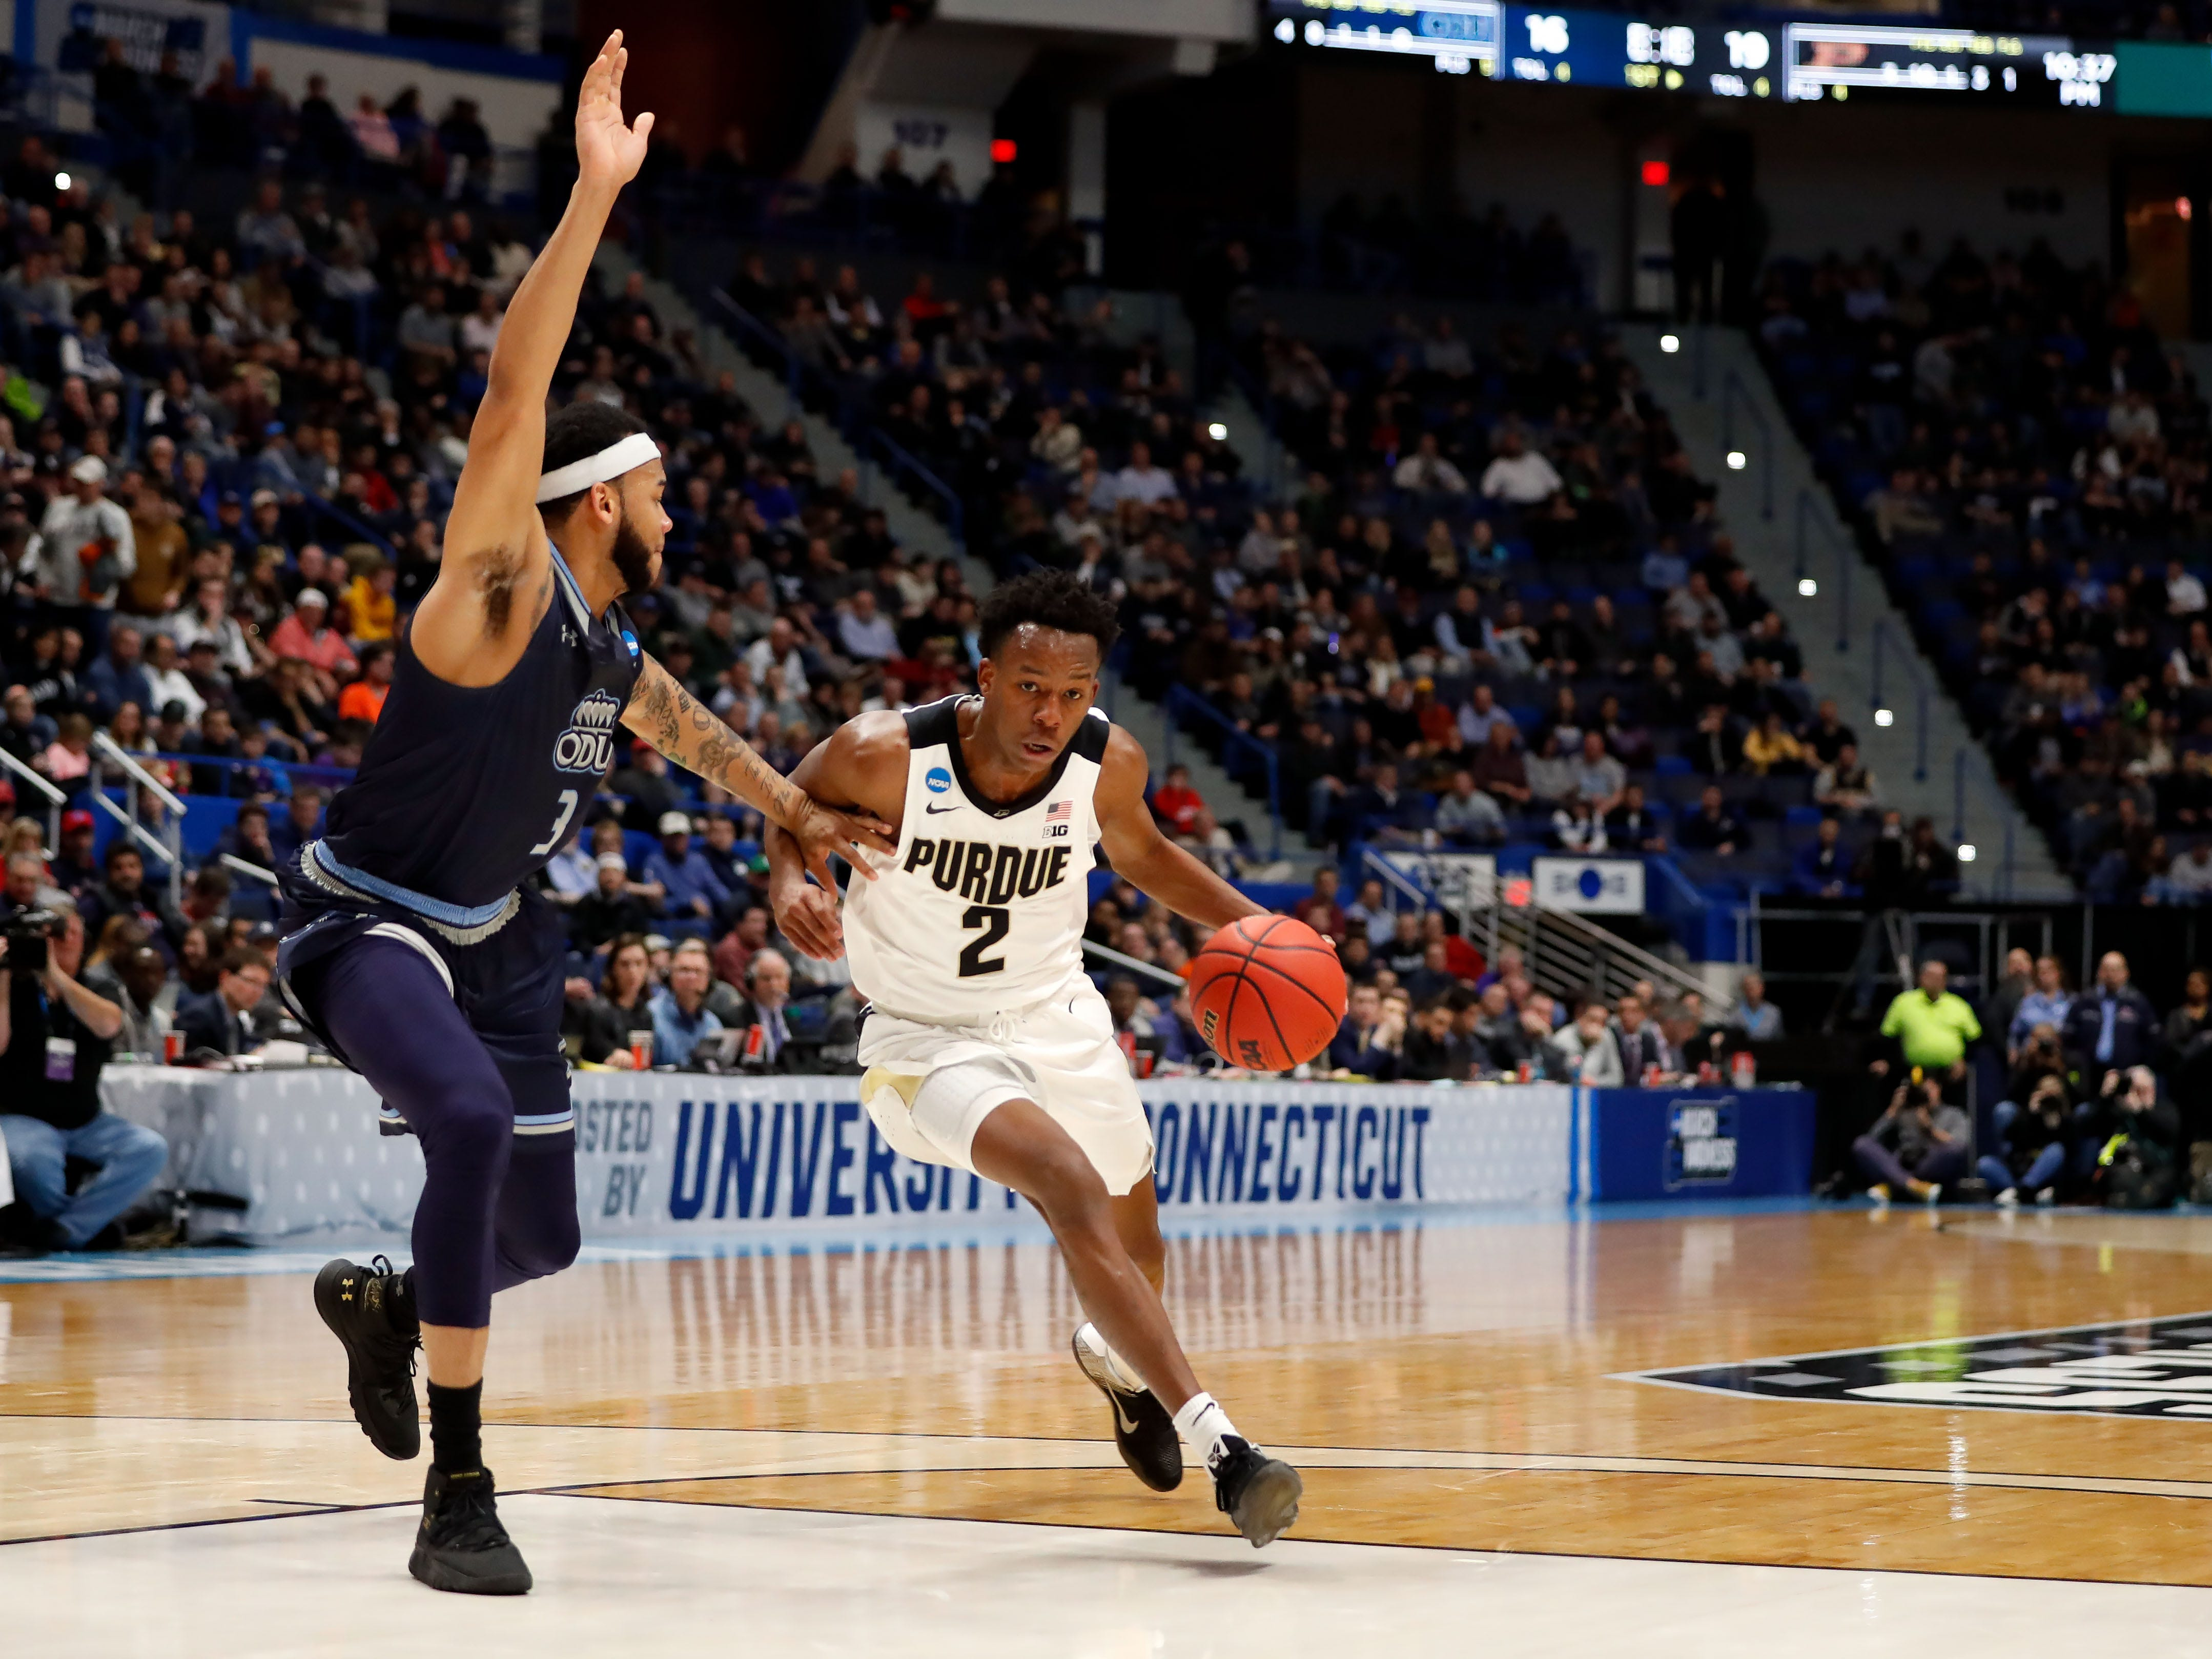 Mar 21, 2019; Hartford, CT, USA; Purdue Boilermakers guard Eric Hunter Jr. (2) drives to the basket against Old Dominion Monarchs guard B.J. Stith (3) during the first half of a game in the first round of the 2019 NCAA Tournament at XL Center. Mandatory Credit: David Butler II-USA TODAY Sports